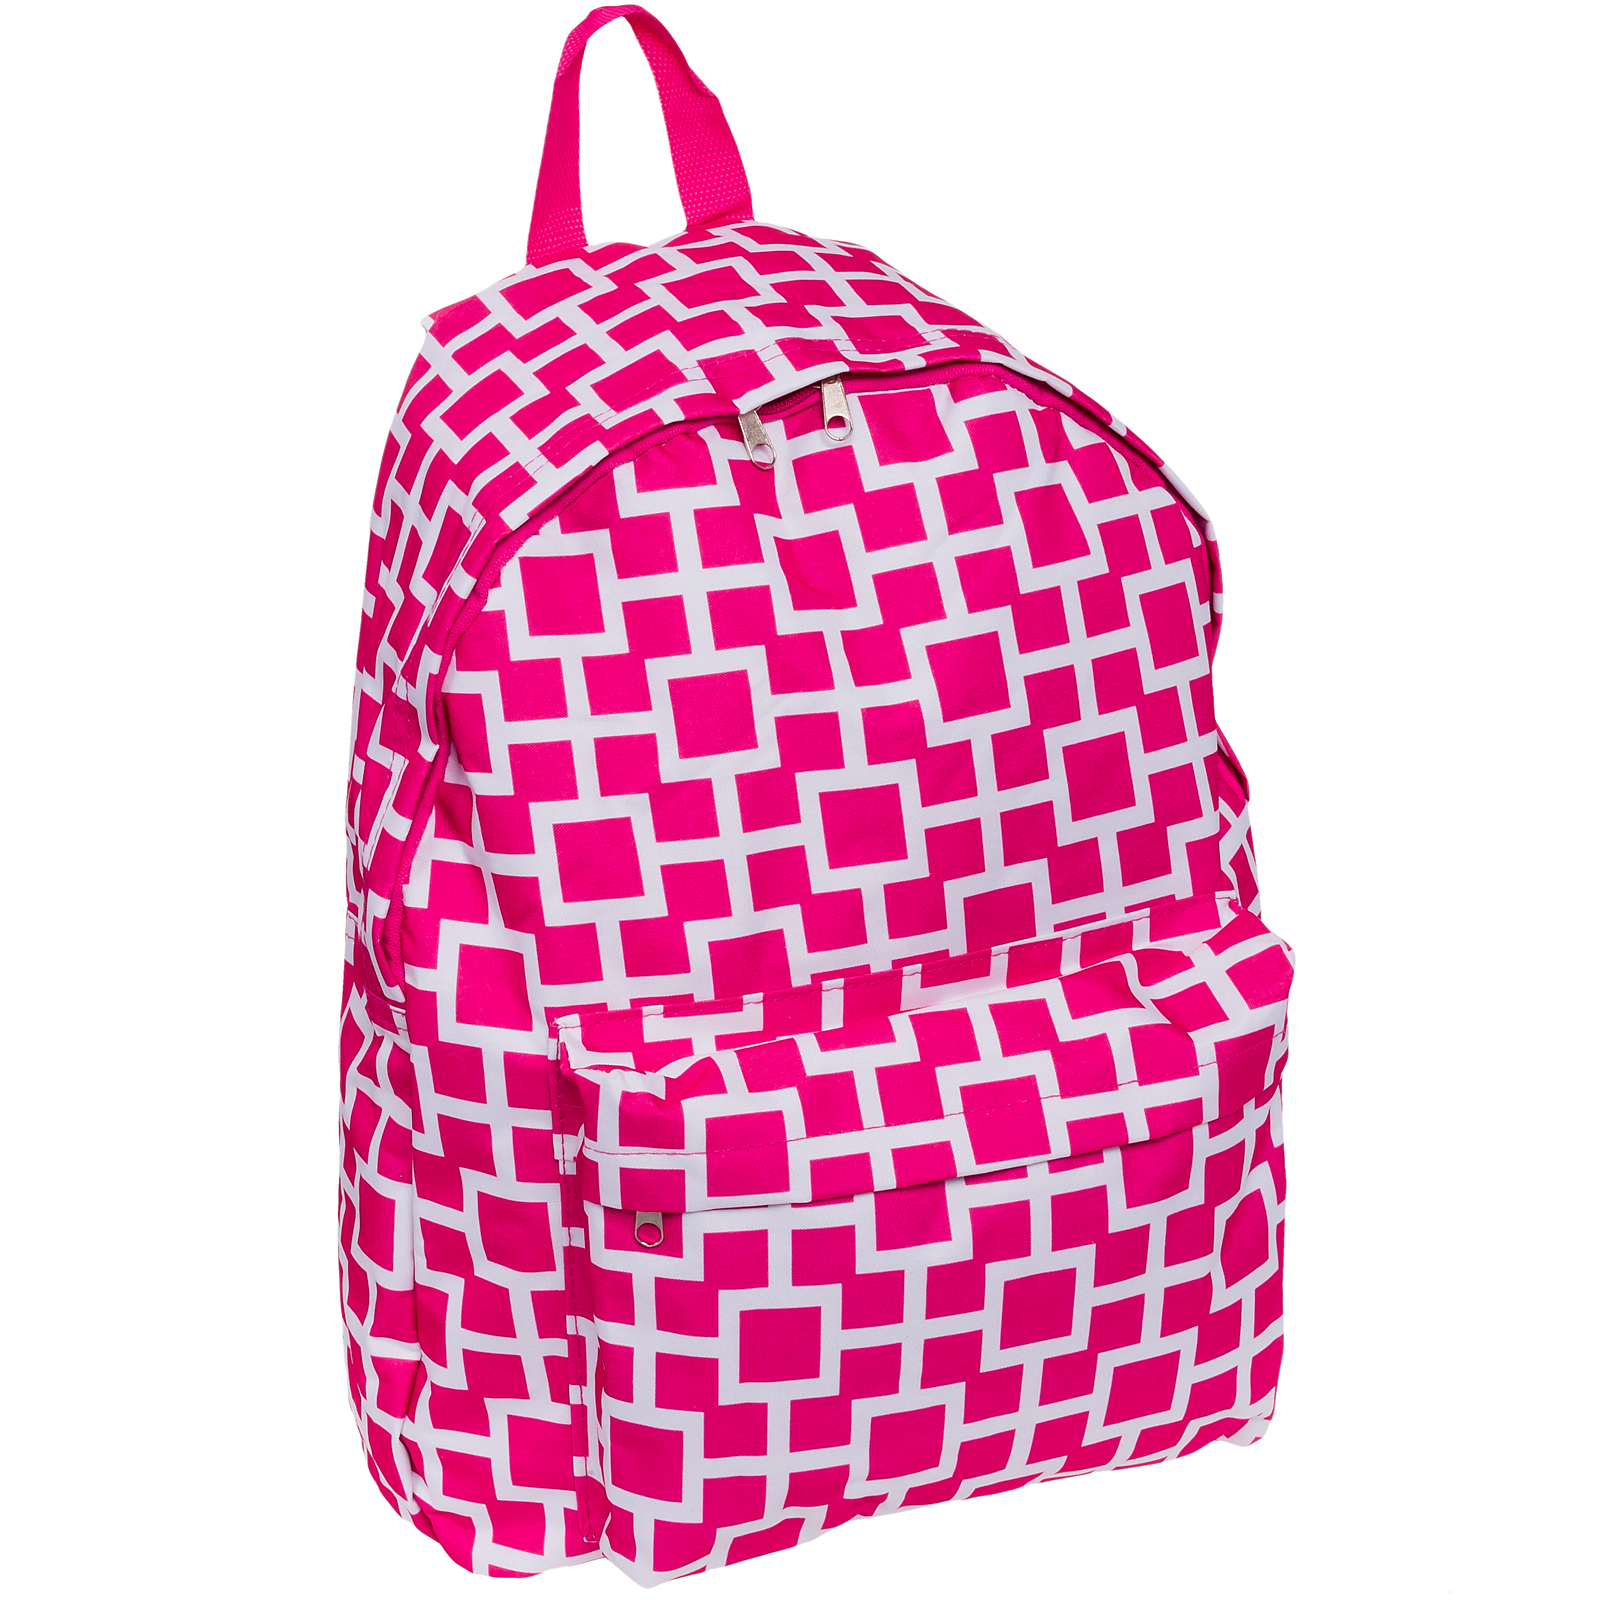 "SilverHooks Geo Square Print 17"" Backpack Bag w/ Cell Phone Pouch (Pink/White)"